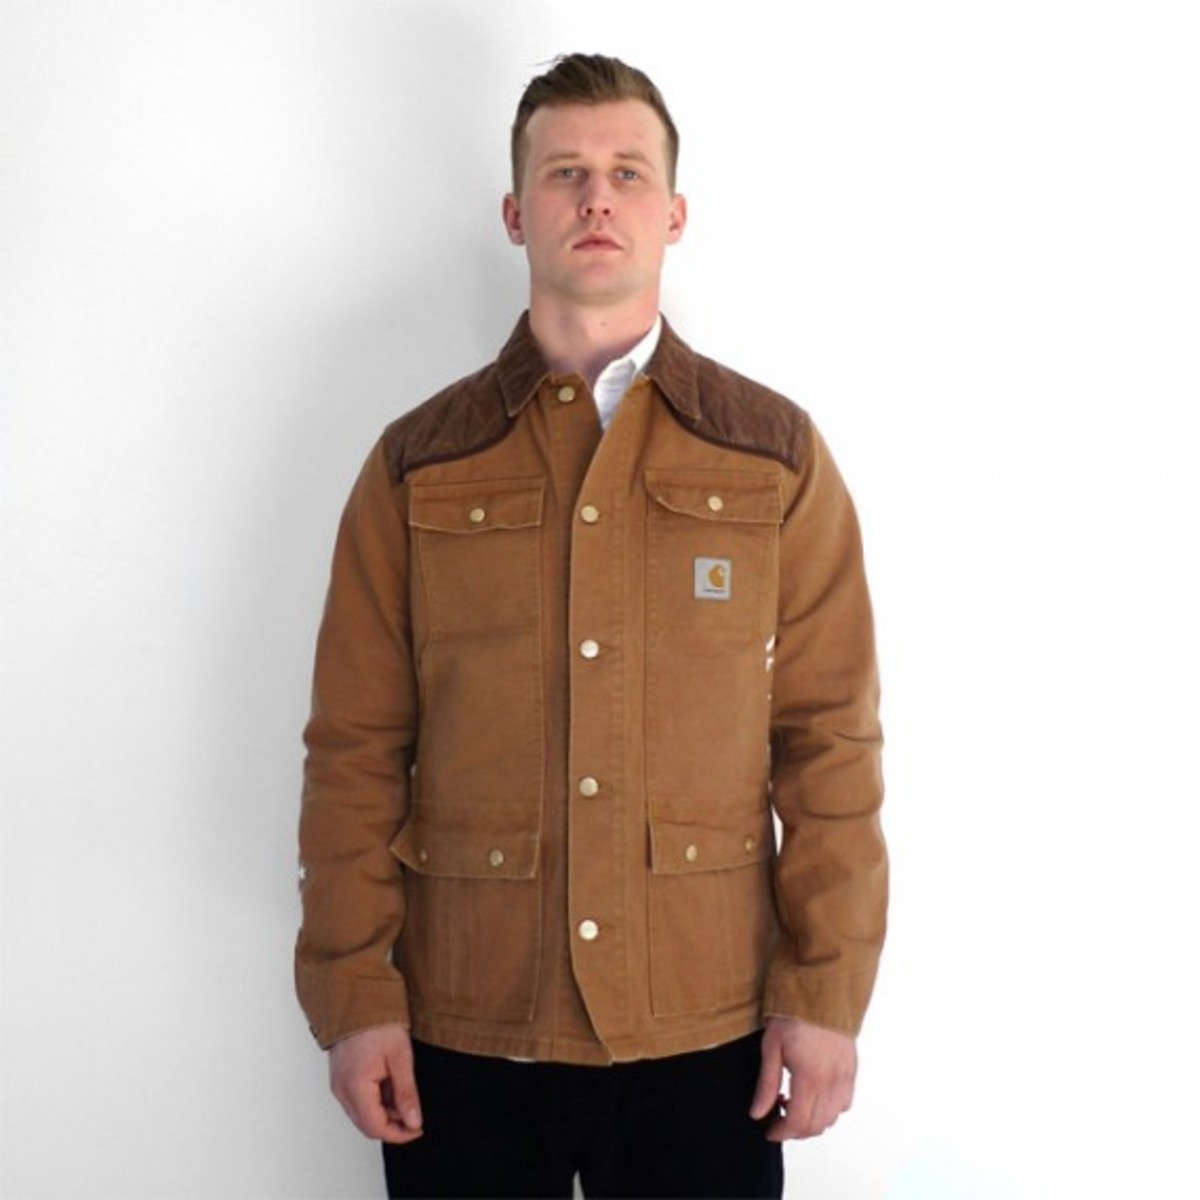 uniform-experiment-carhartt-hunting-jacket-brown-08